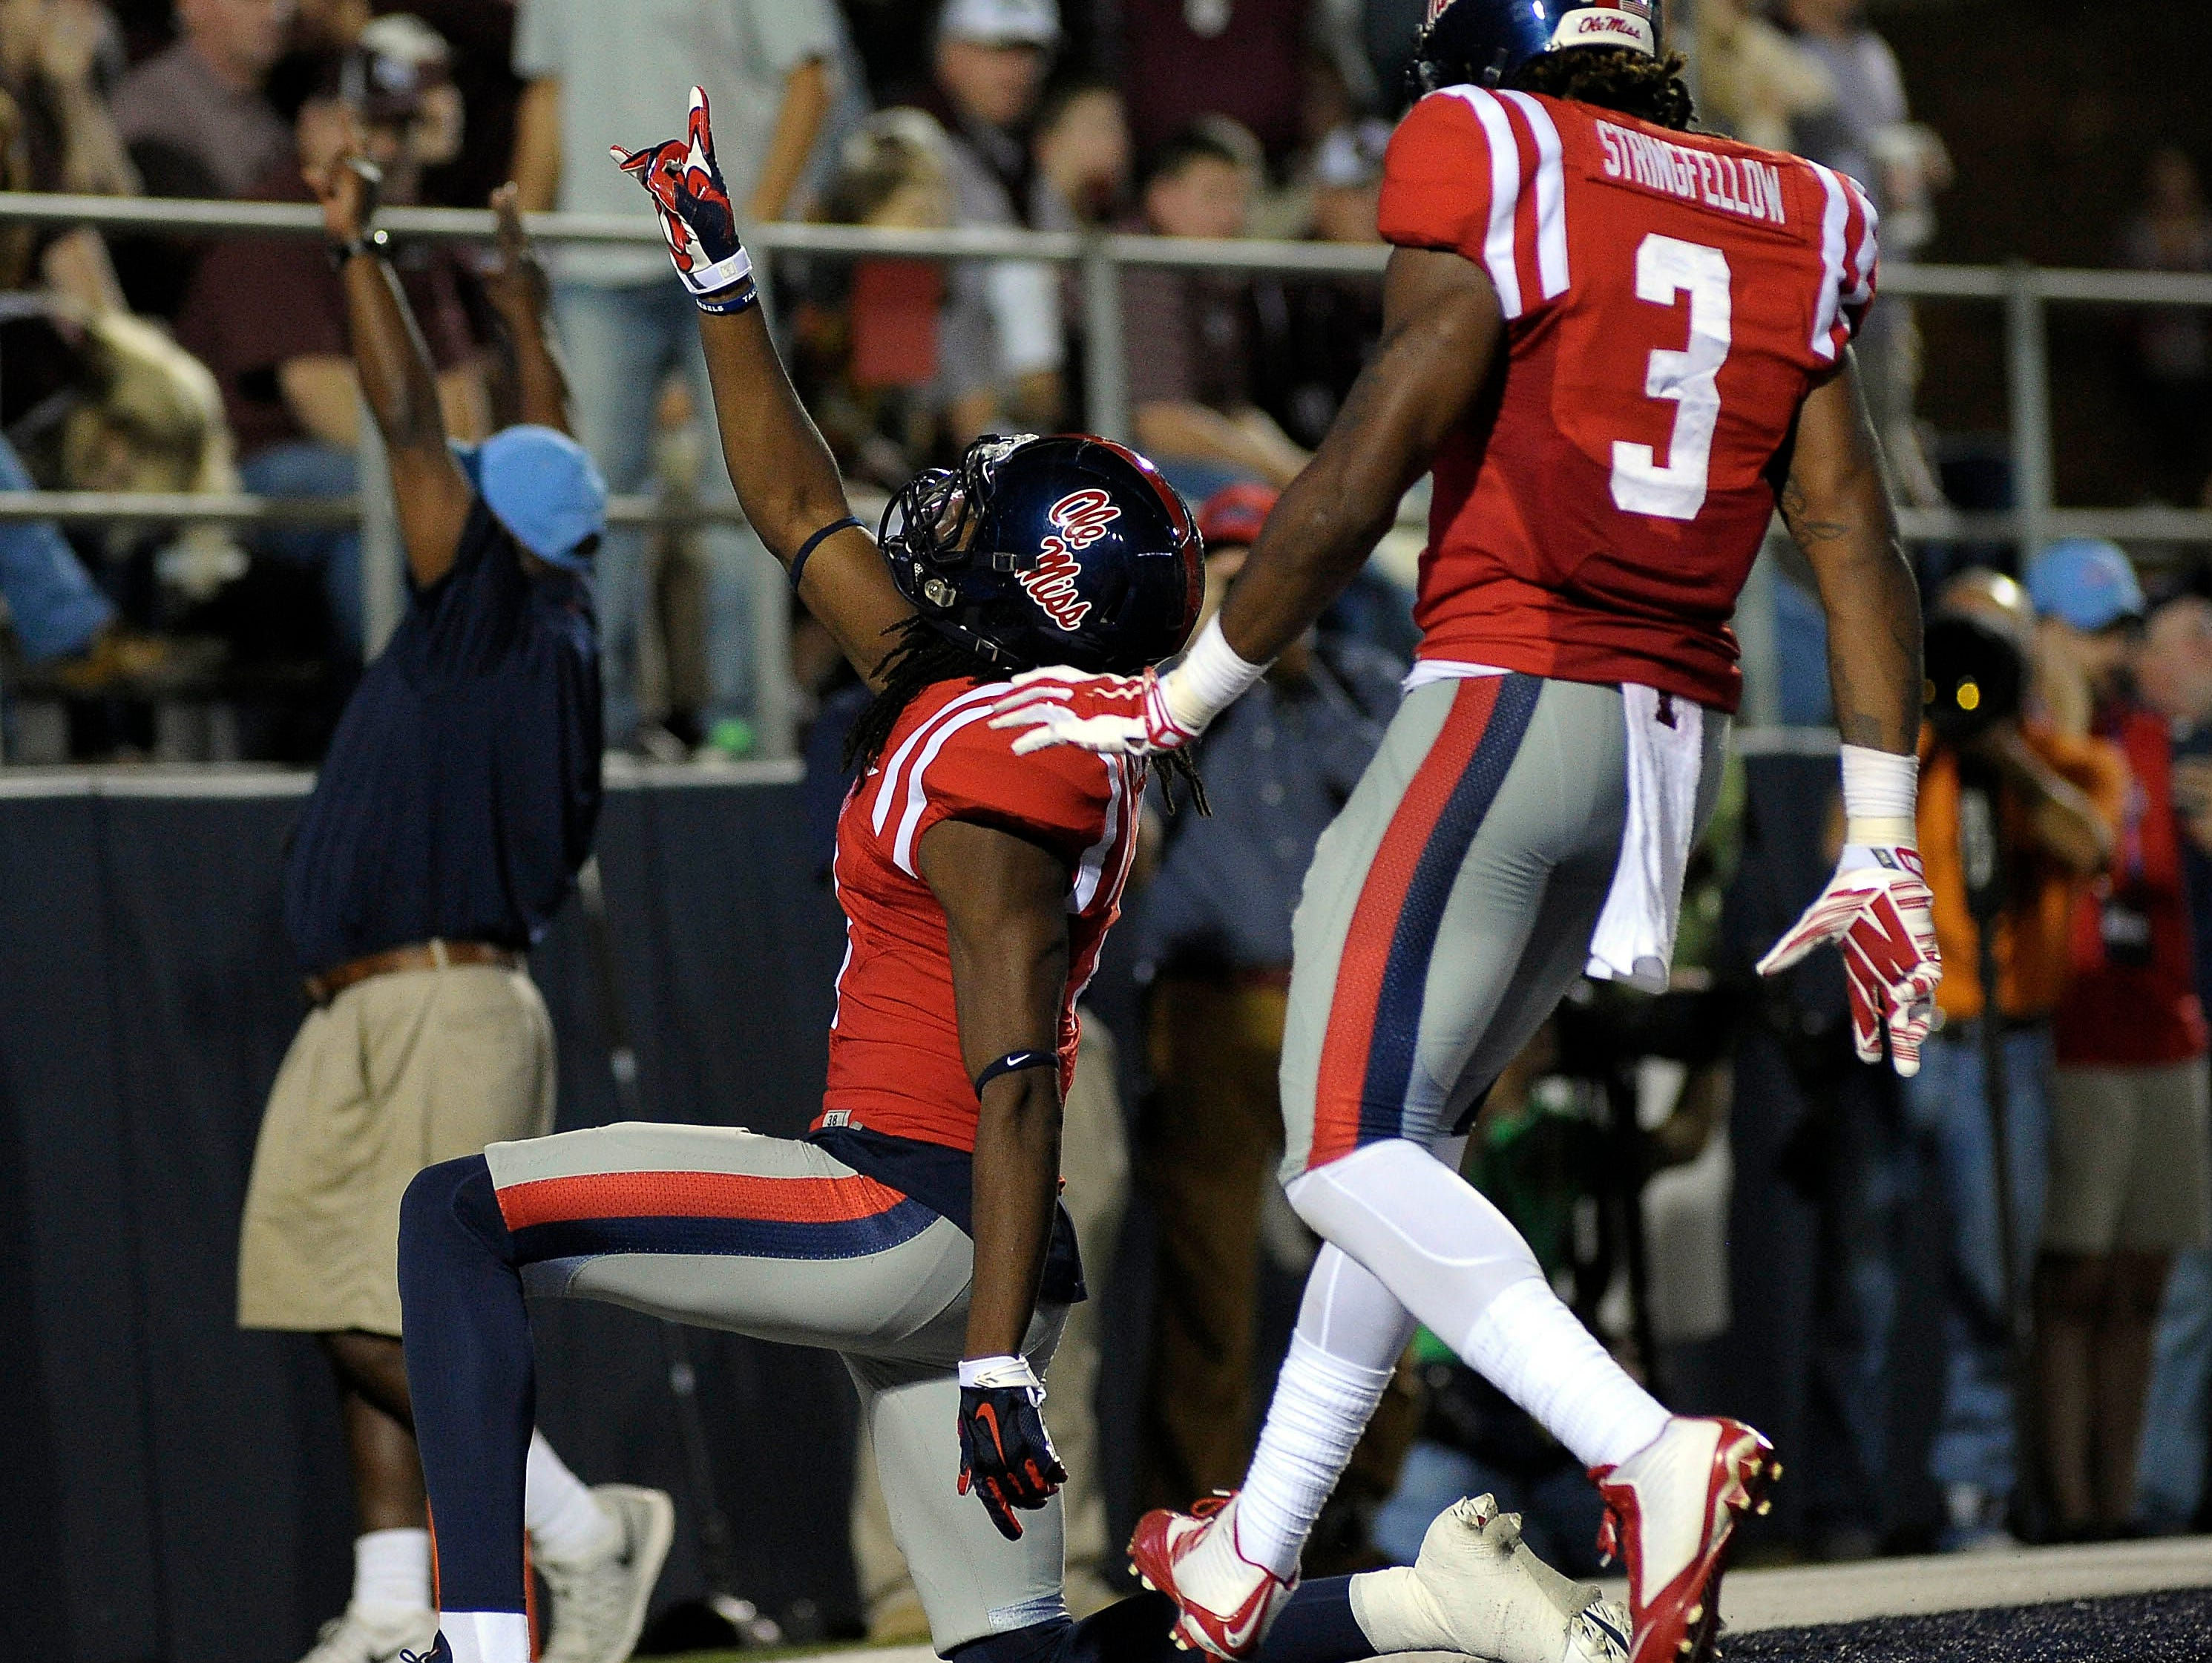 Ole Miss wide receiver Laquon Treadwell (left) is excited to play Auburn again. He suffered a left leg injury in last year's game against the Tigers.